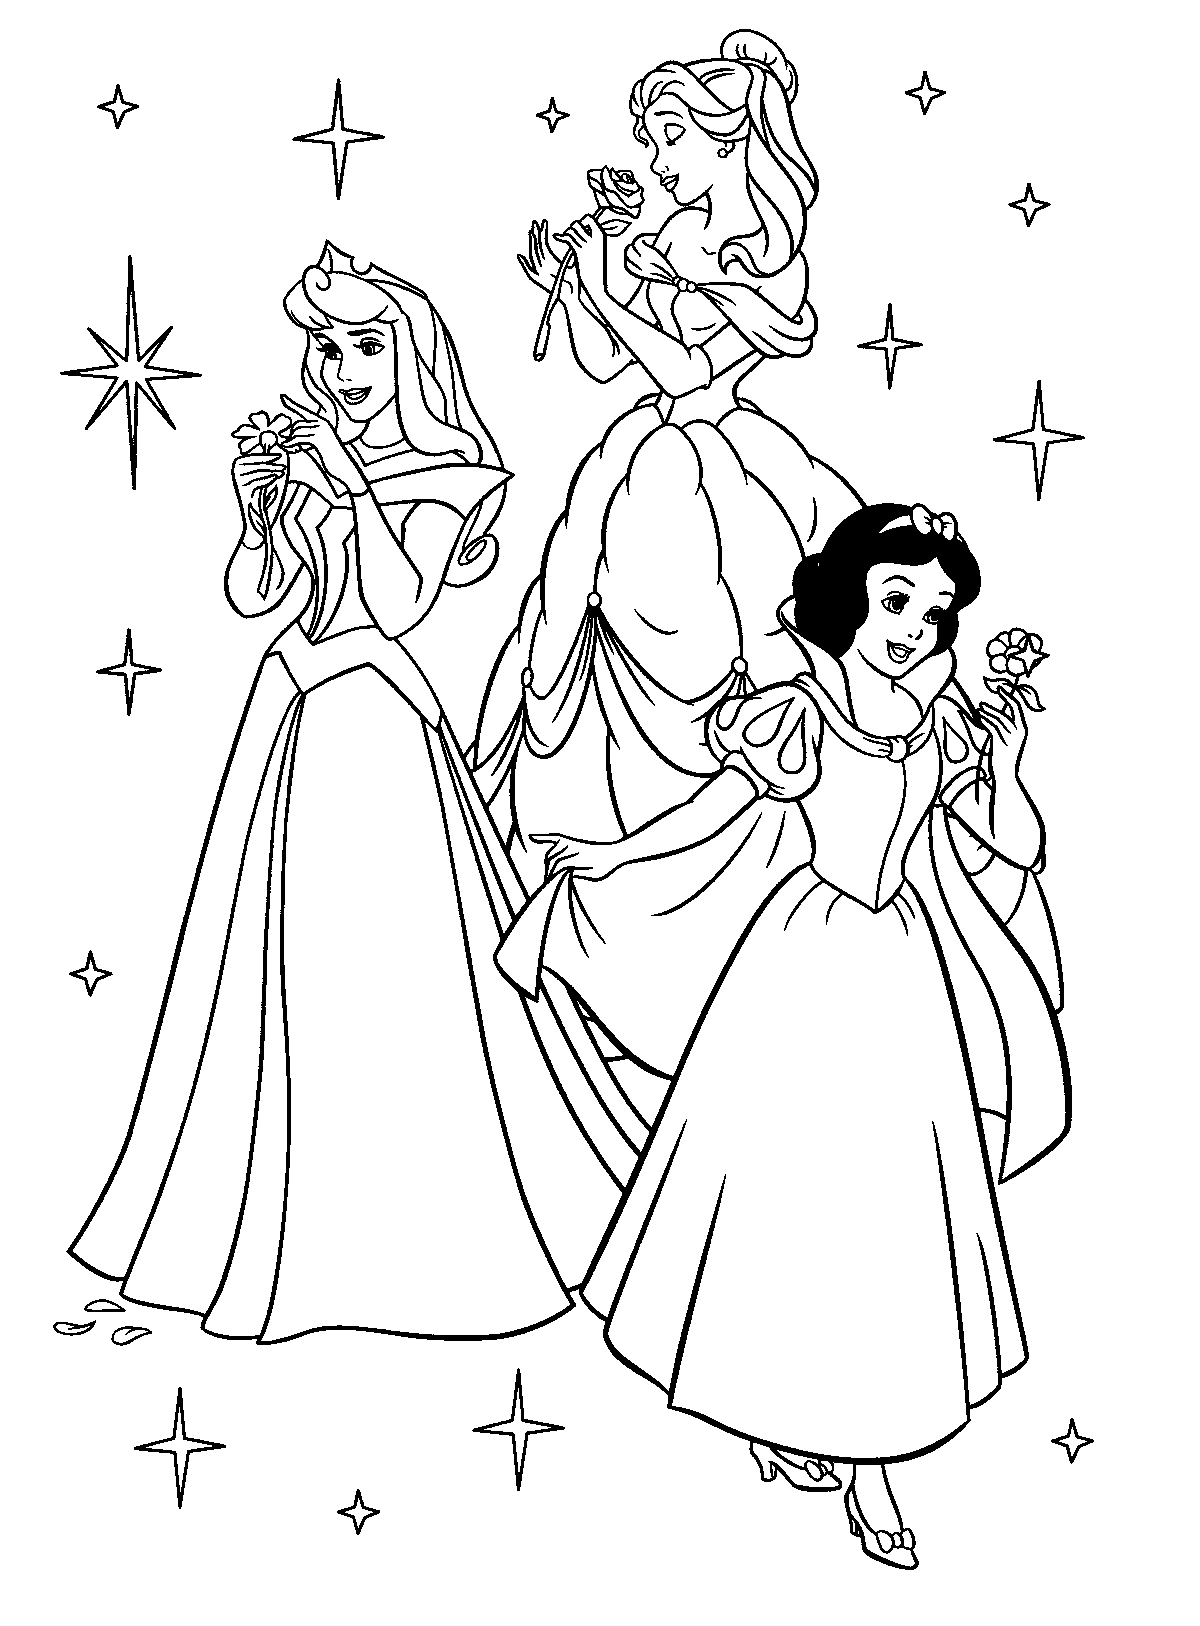 download princess coloring pages 6 - Princess Color Pages